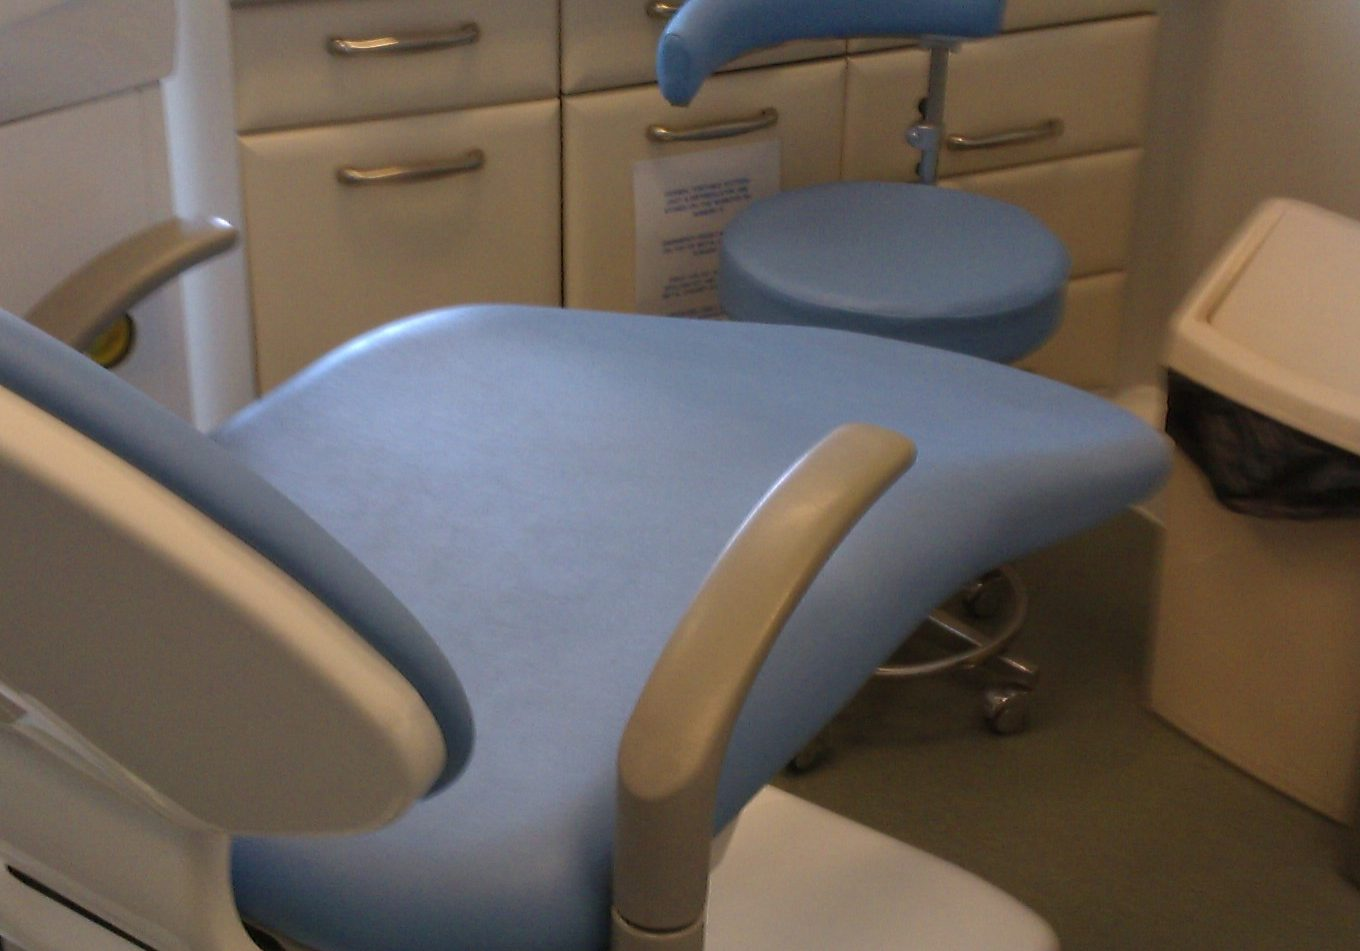 Blue surgery chair with brand new reupholstered ambla vinyl textile